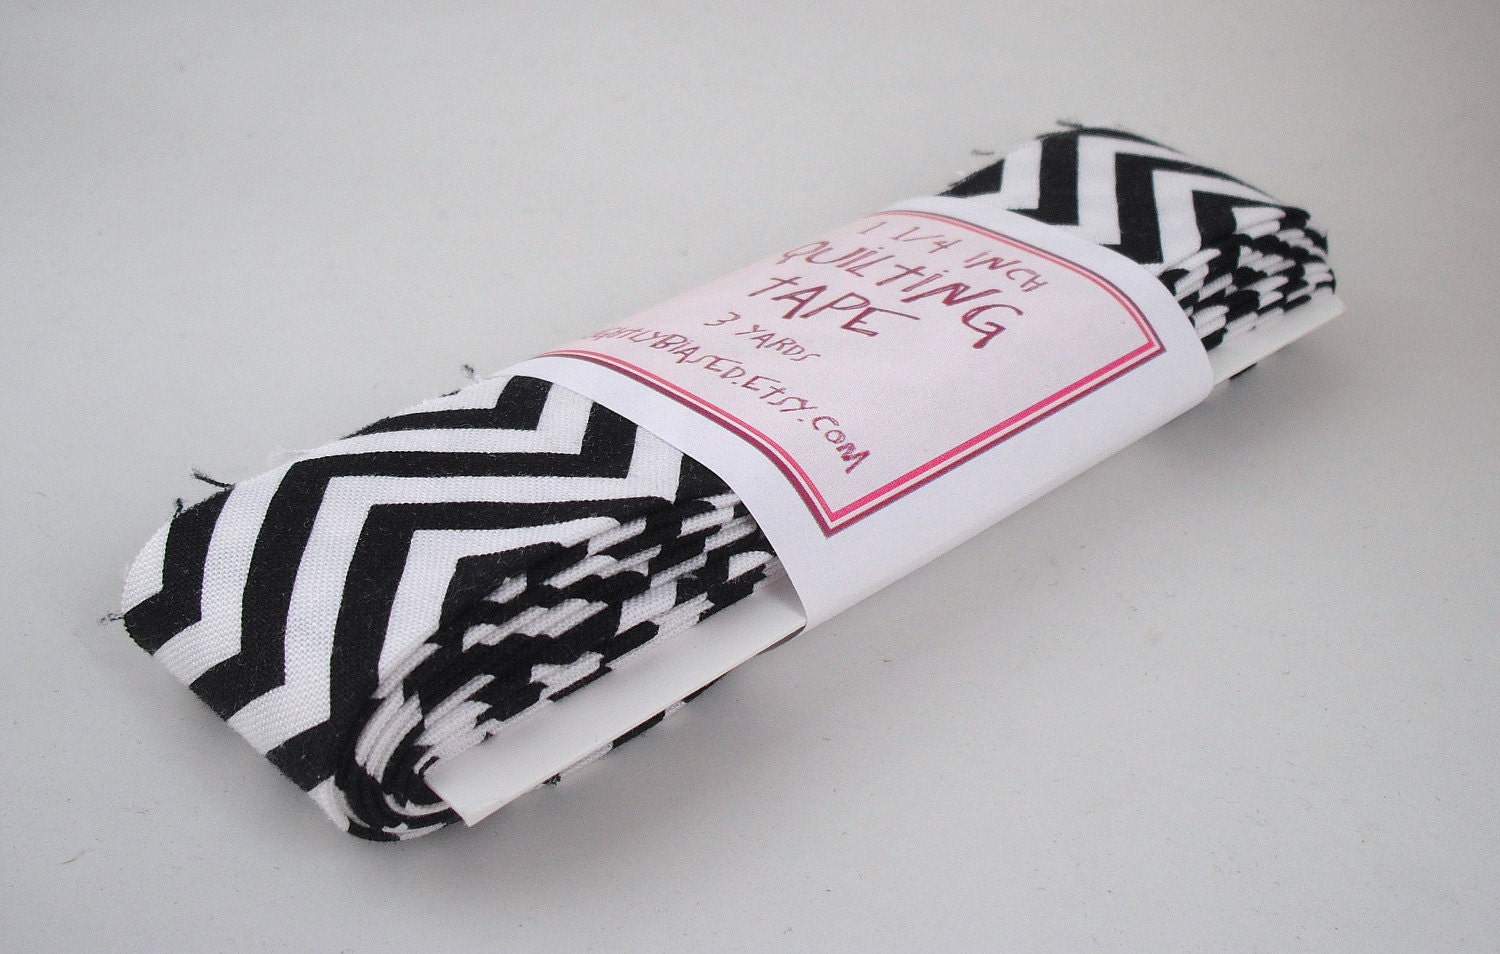 Quilt Binding - Remix Chevron in Black and White Handmade Quilting Tape, 3 Yards